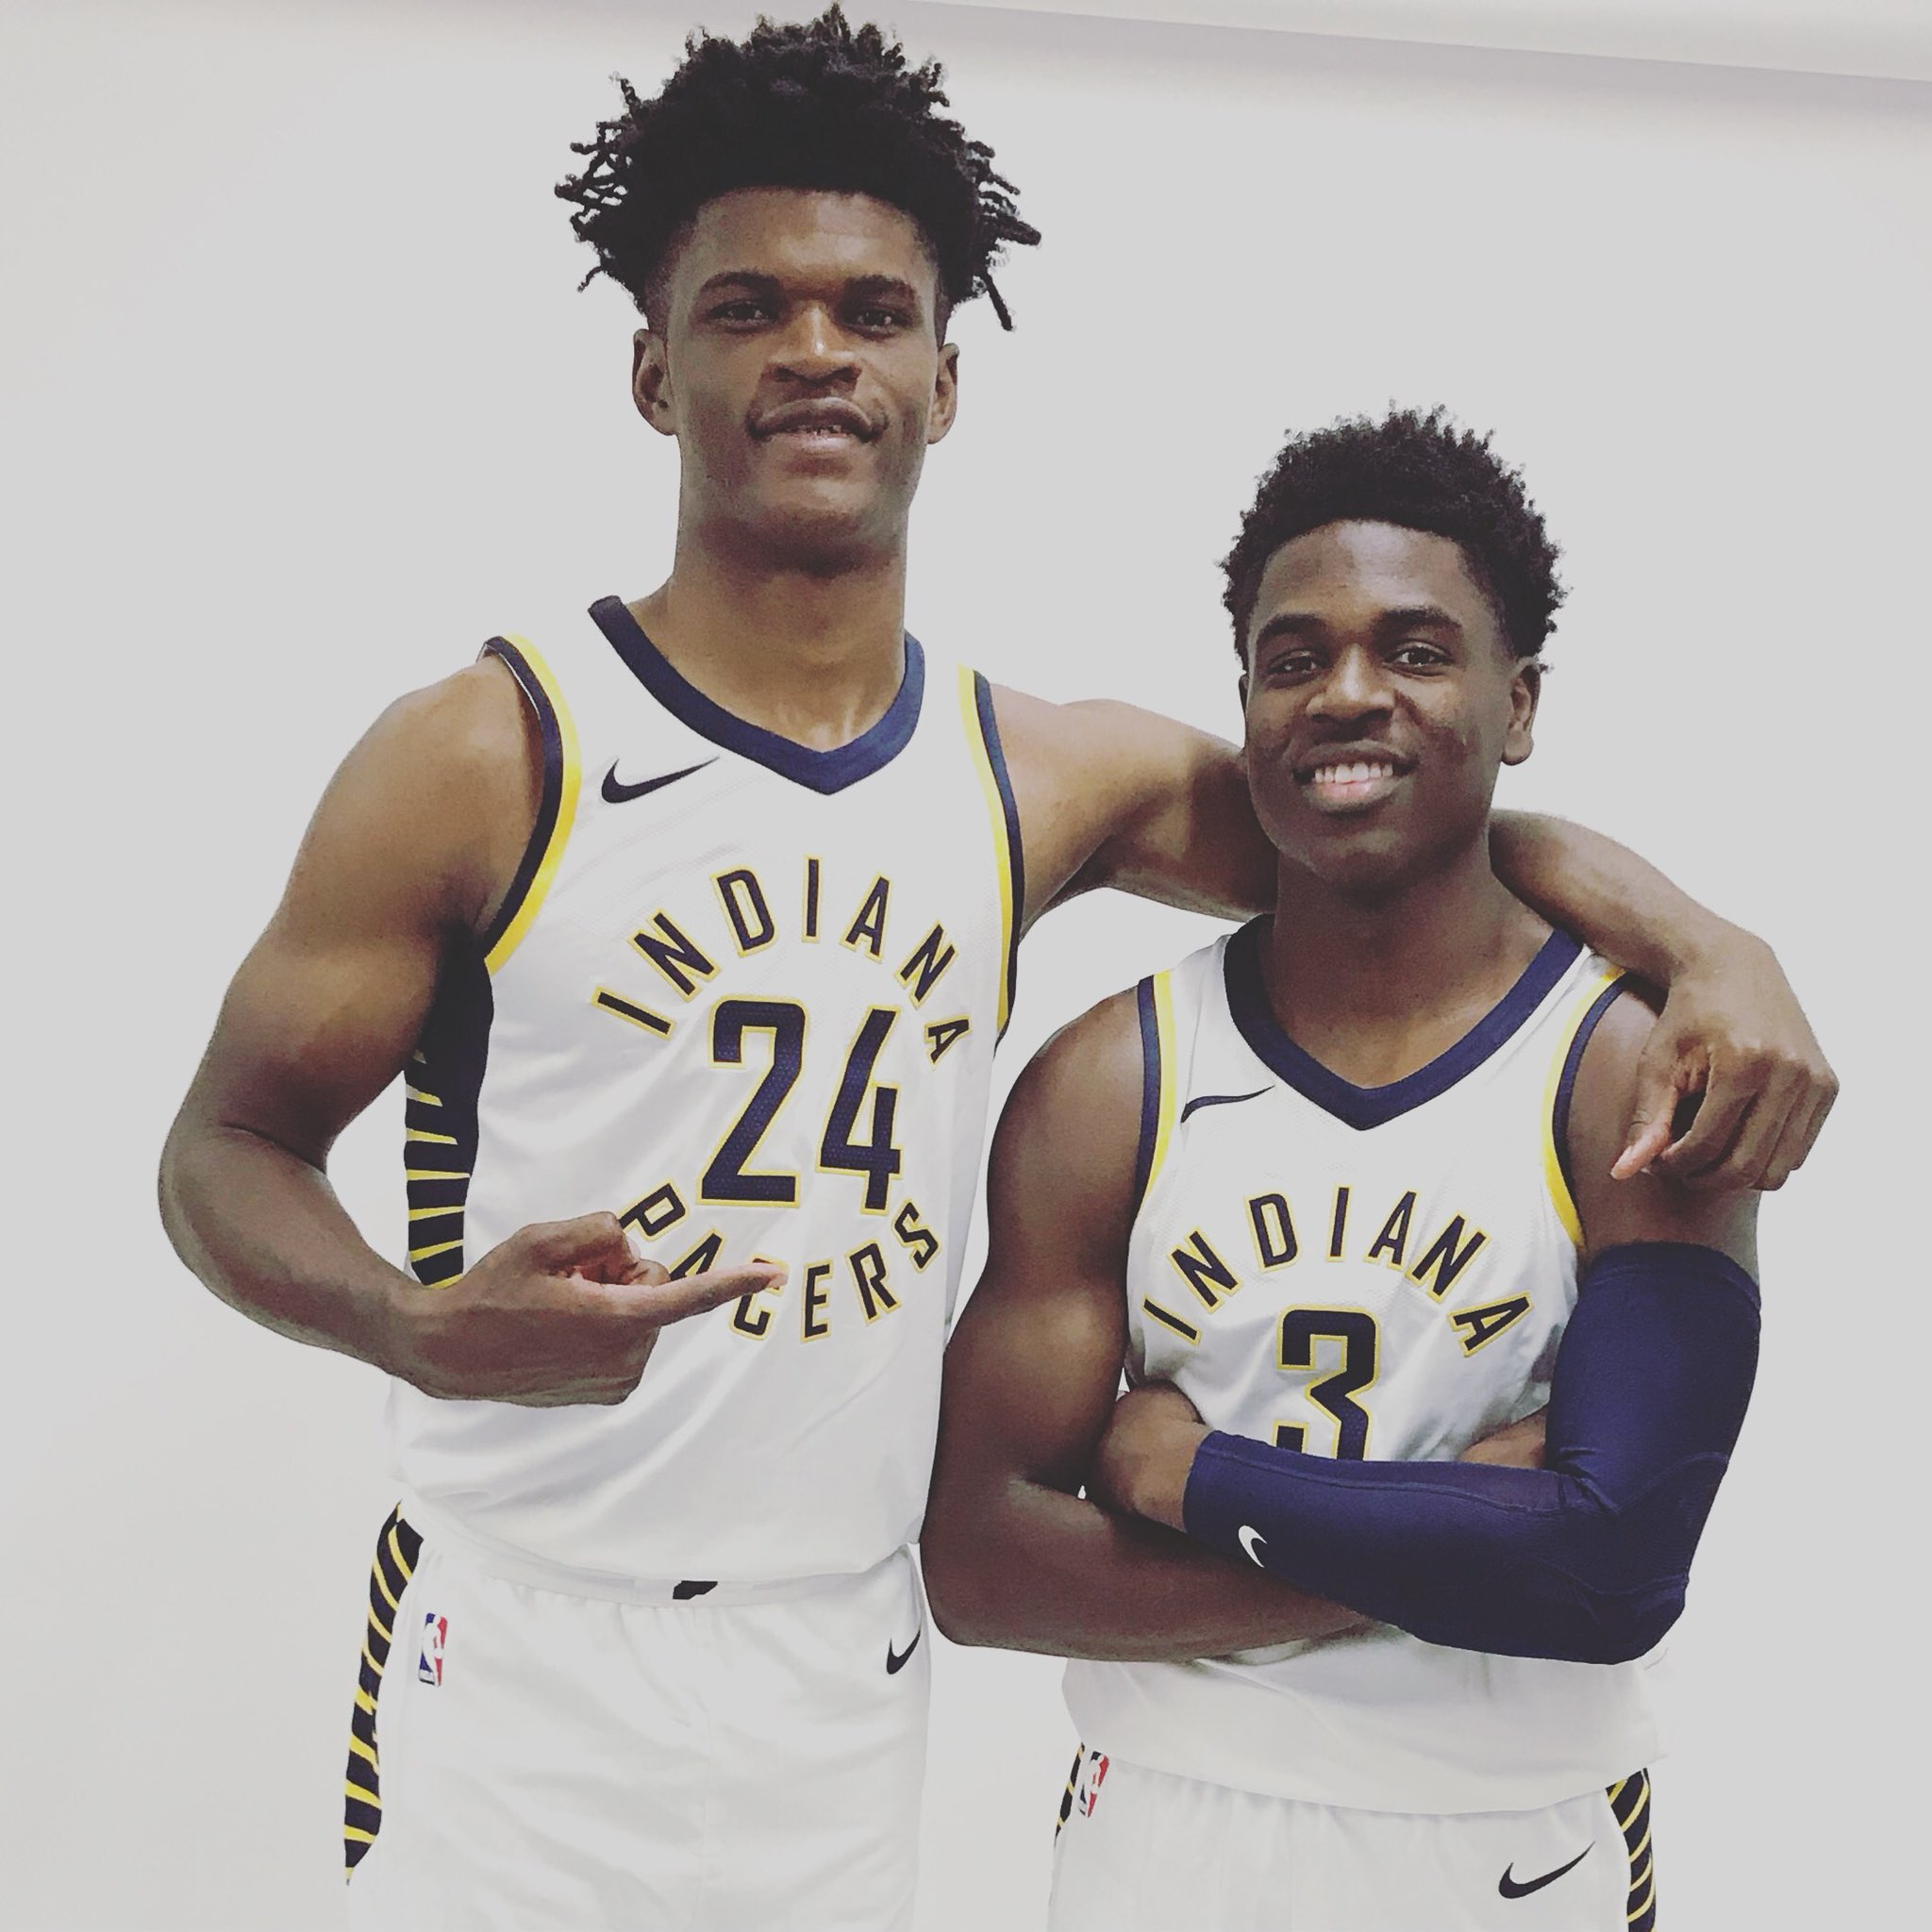 The new guys in their new unis https://t.co/o1M2TzfpbD